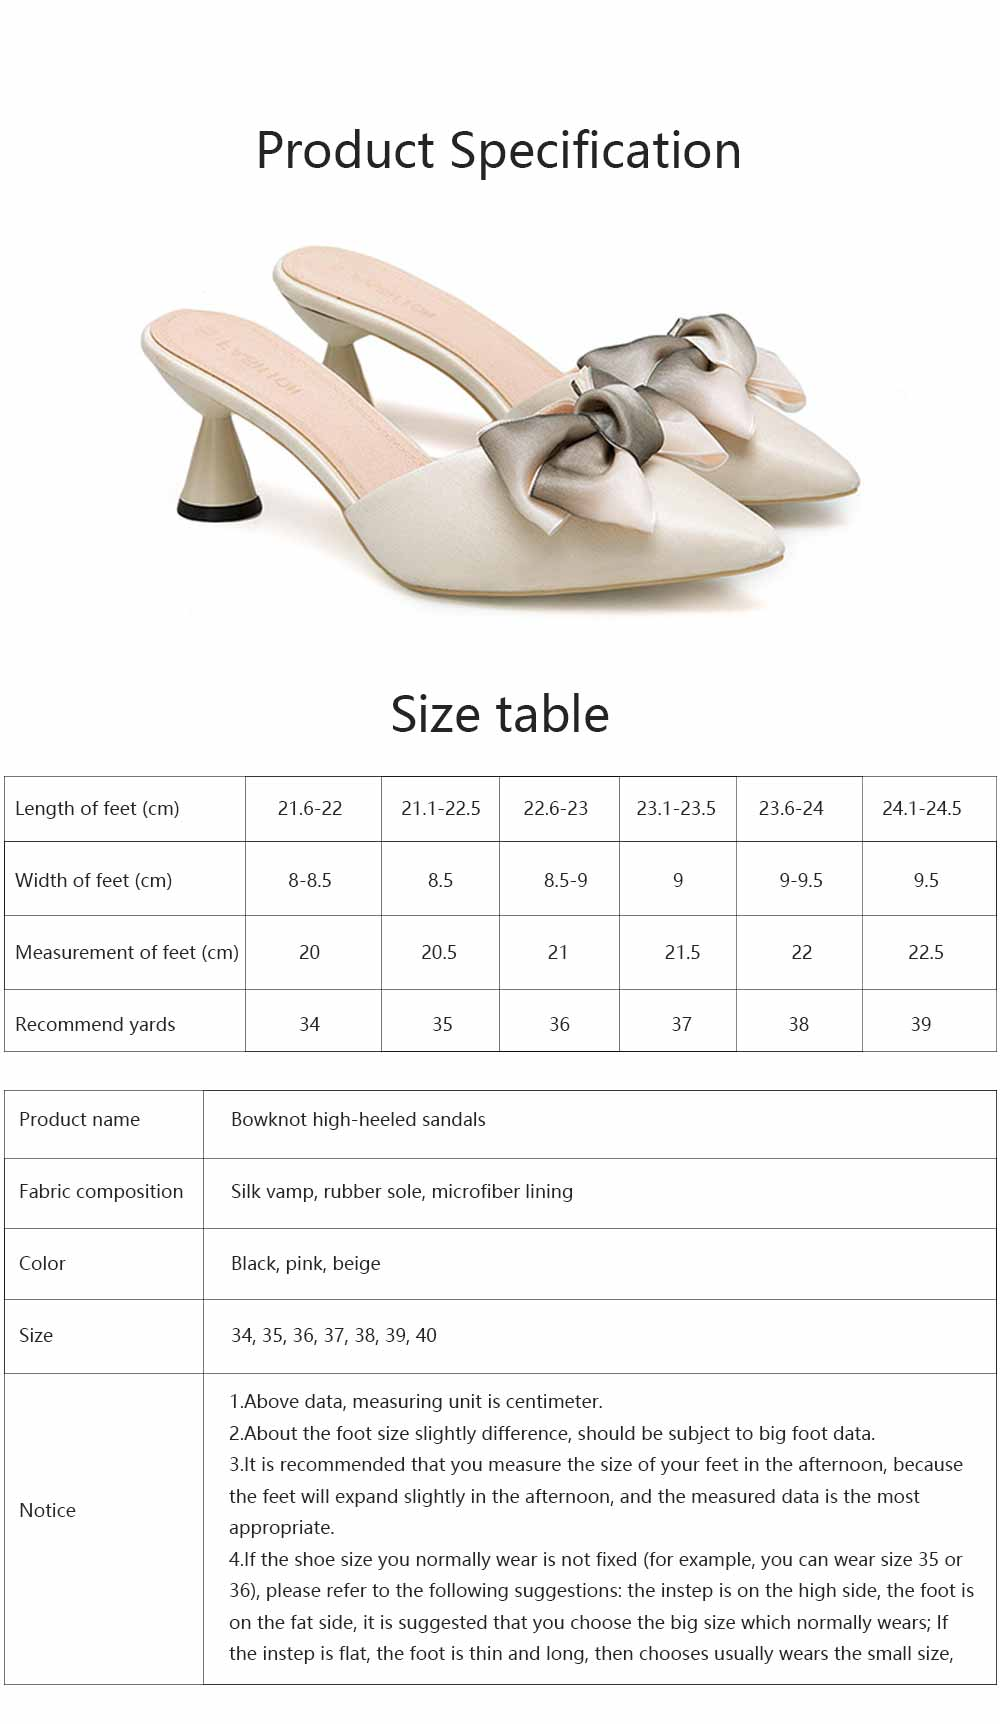 Bowknot High-heeled Sandals for Women Comfortable Breathable Non-slip Wear-resisting Wine Glass Shape High-heeled Slippers 6